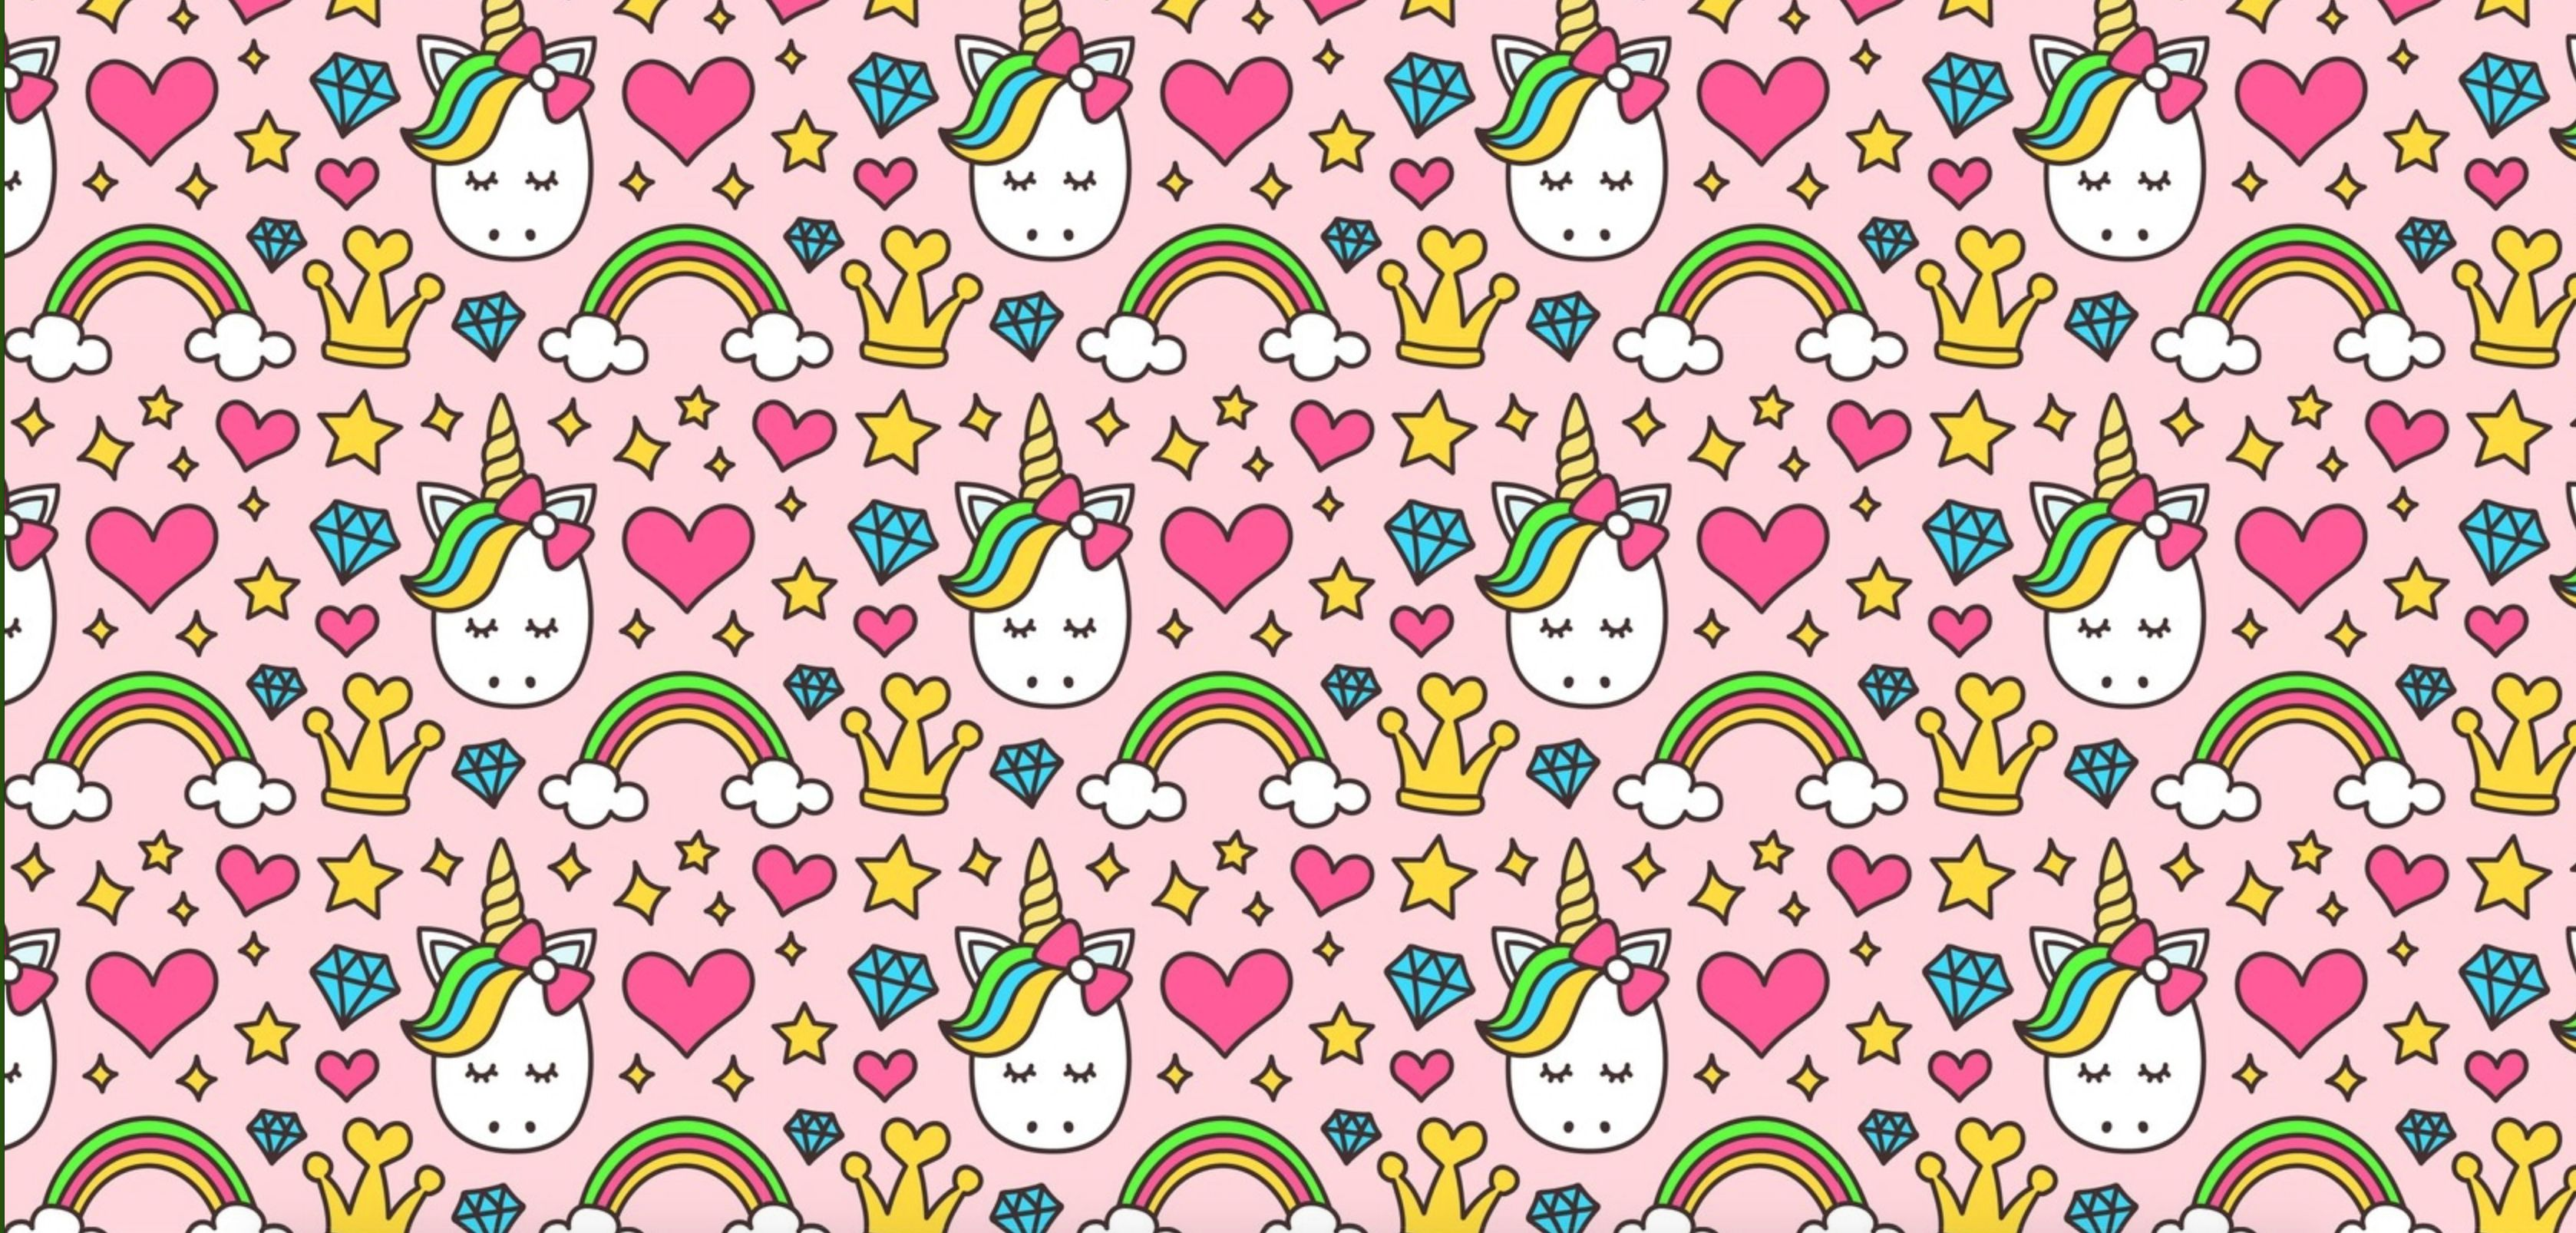 Unicorn Wallpaper Amazing Unicorn Wallpaper For Your Computer Or Phone At Ohsquishy We Love Unicorns And Especiall Unicorn Wallpaper Squishies Kids Rugs